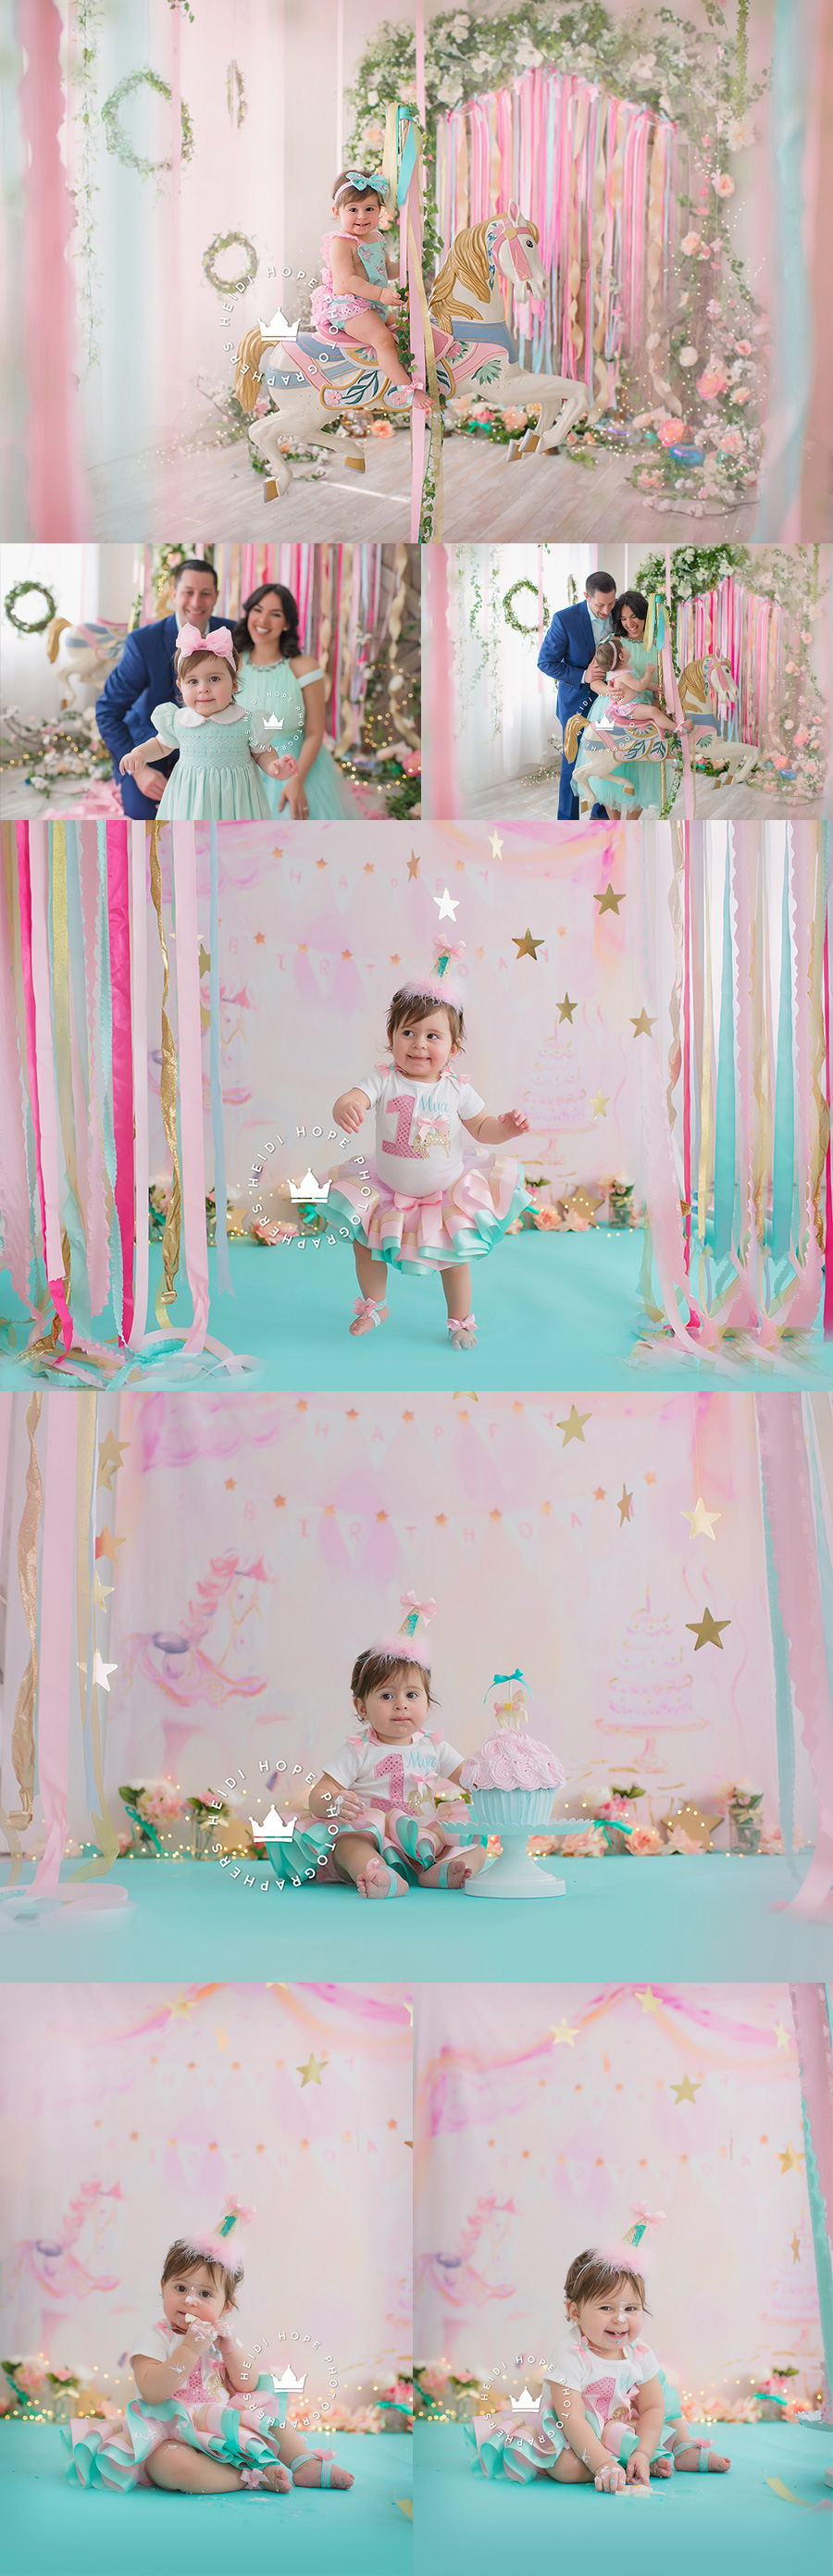 carousel-baby-cakesmash-photography-by-massachusetts-baby-photographer-heidi-hope-backdrops